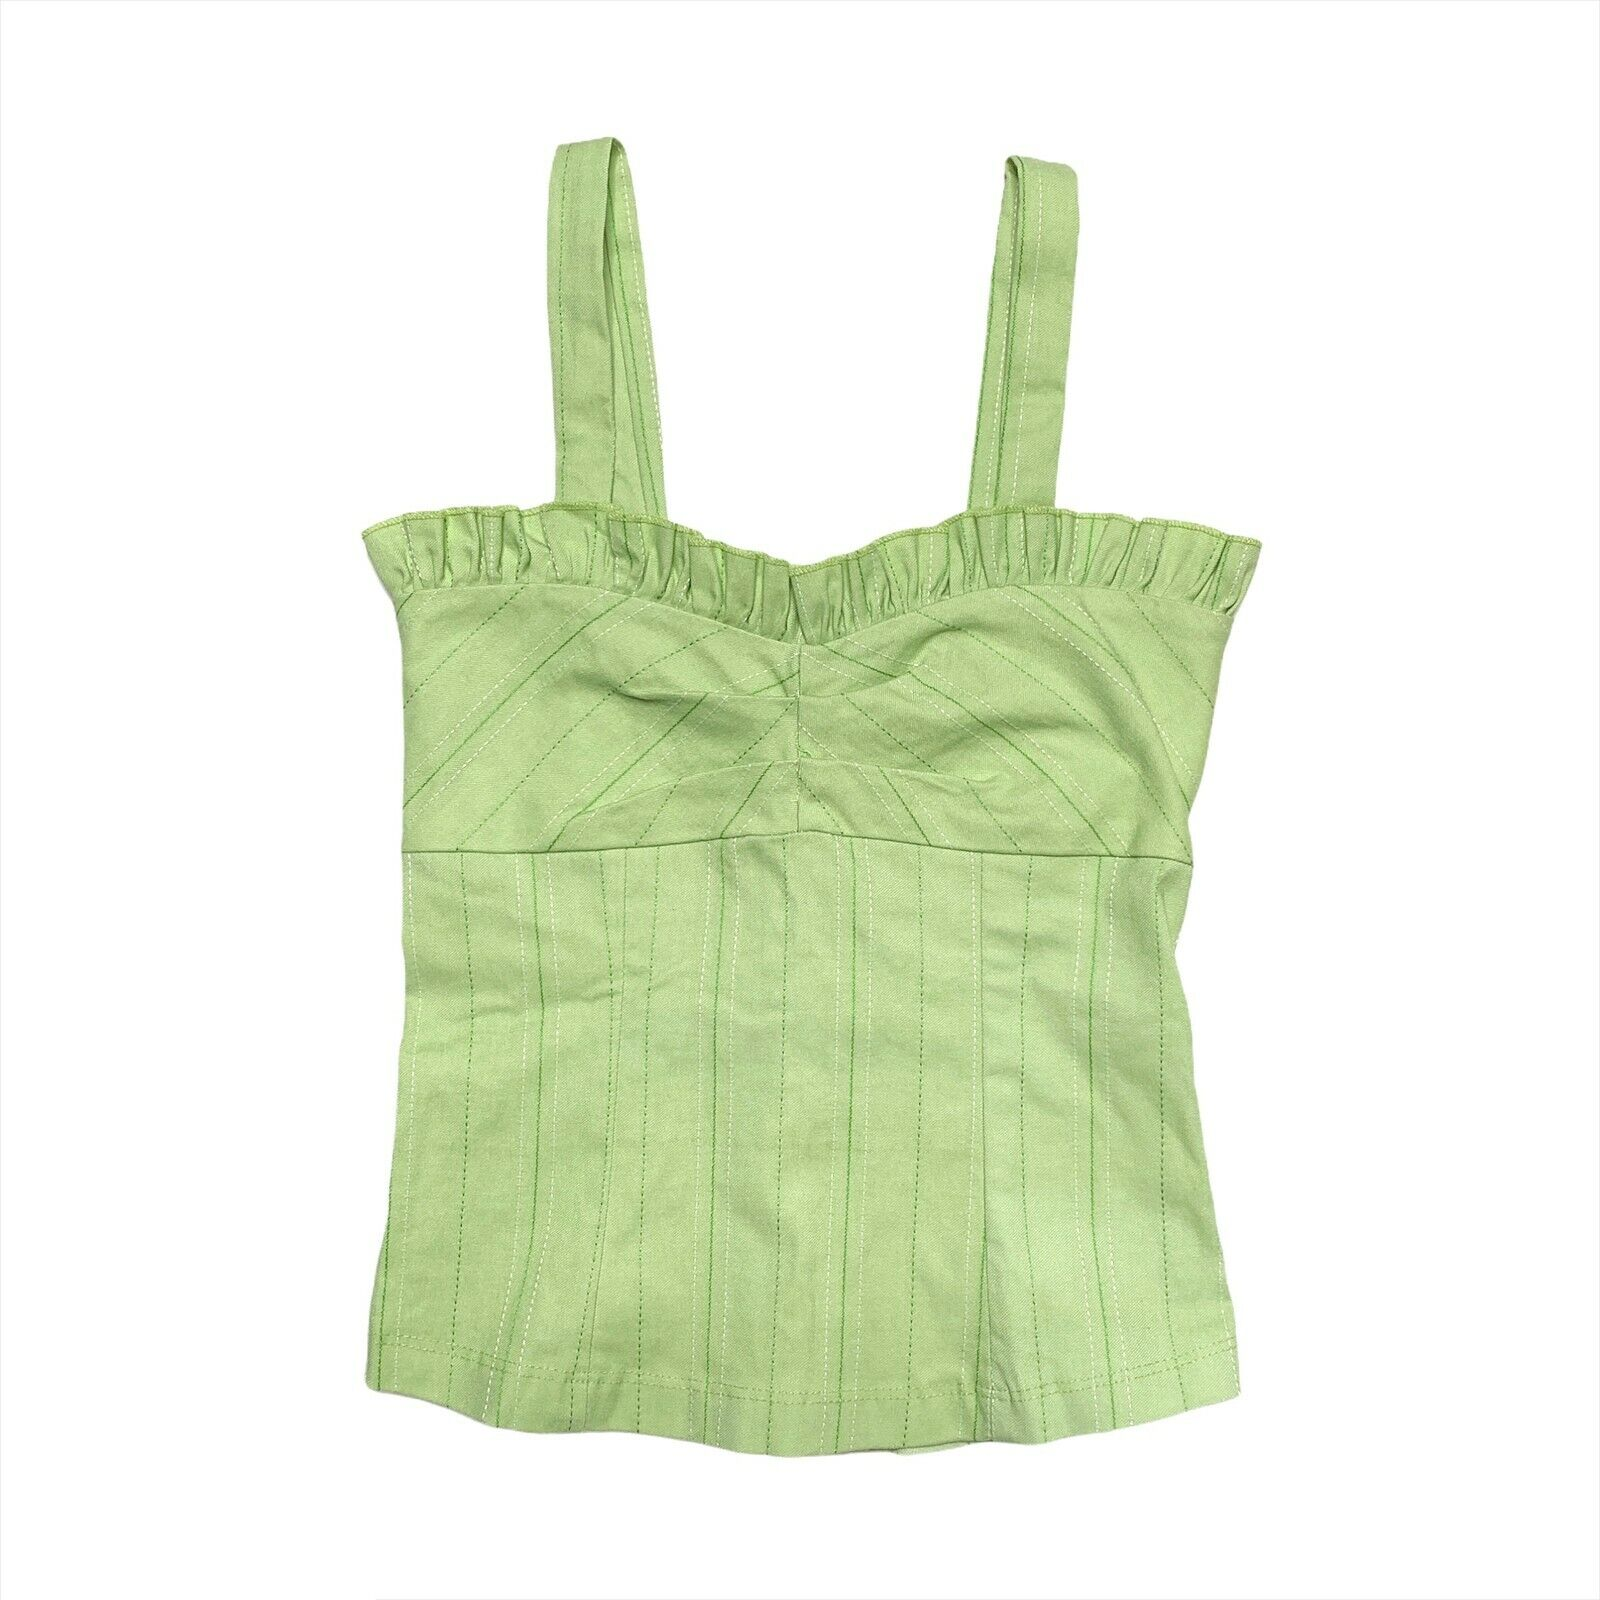 Size Small Lime Green Ribbed Top  Vintage 90s Sleeveless Backless Satin Trim Pointy Collar Blouse